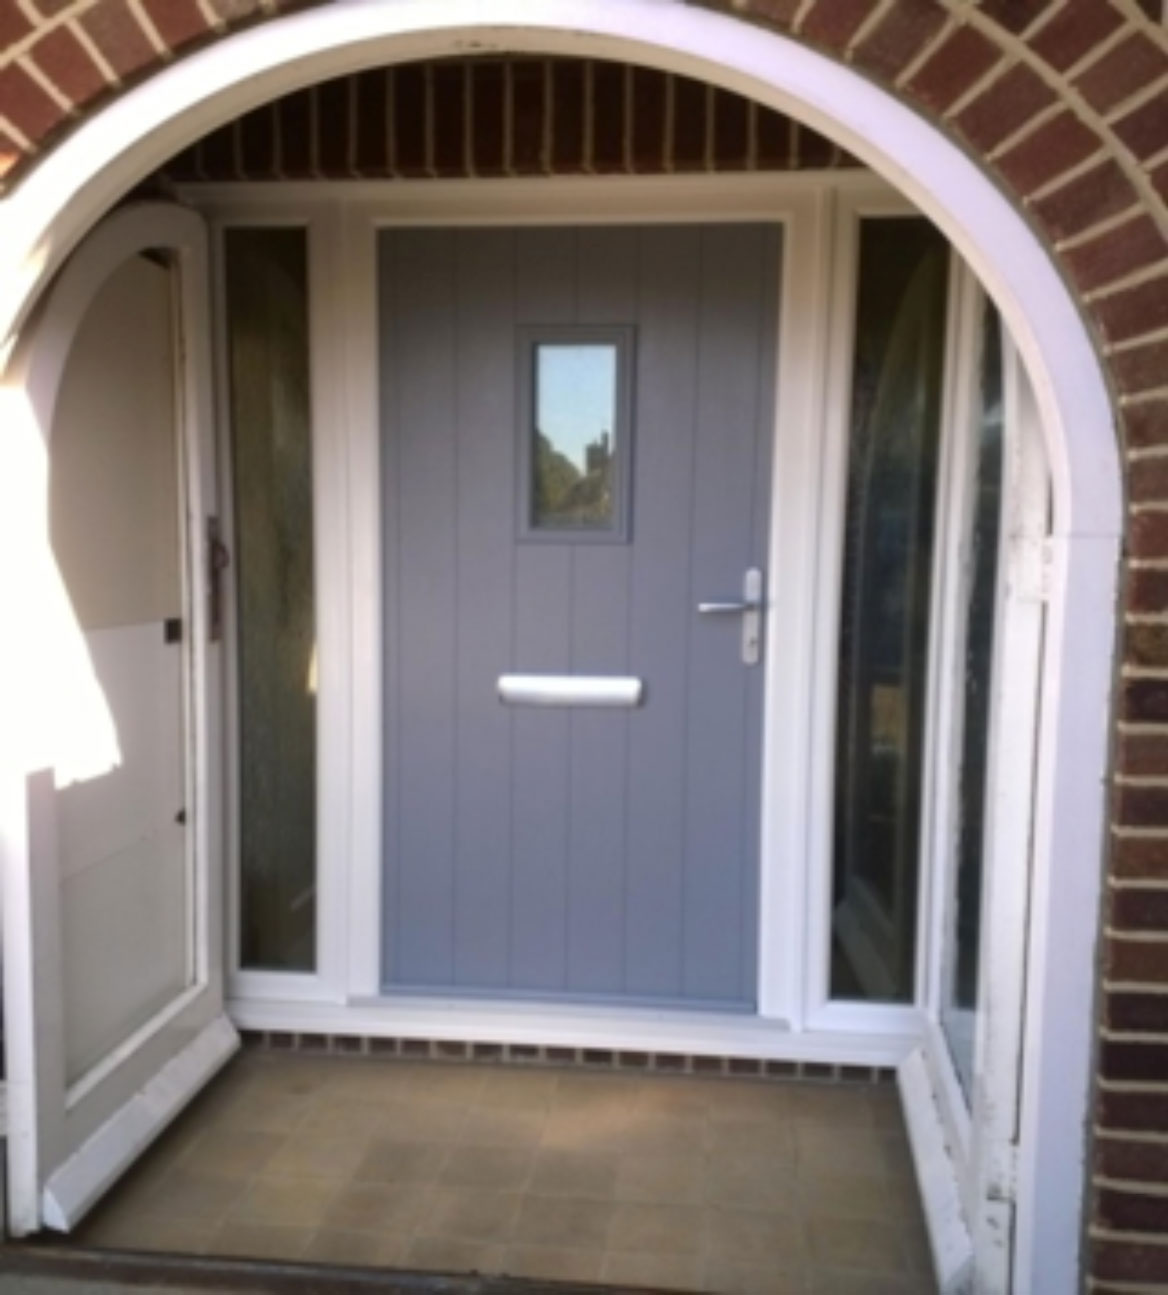 & Composite Door Images | Timber Composite Doors Blog Pezcame.Com